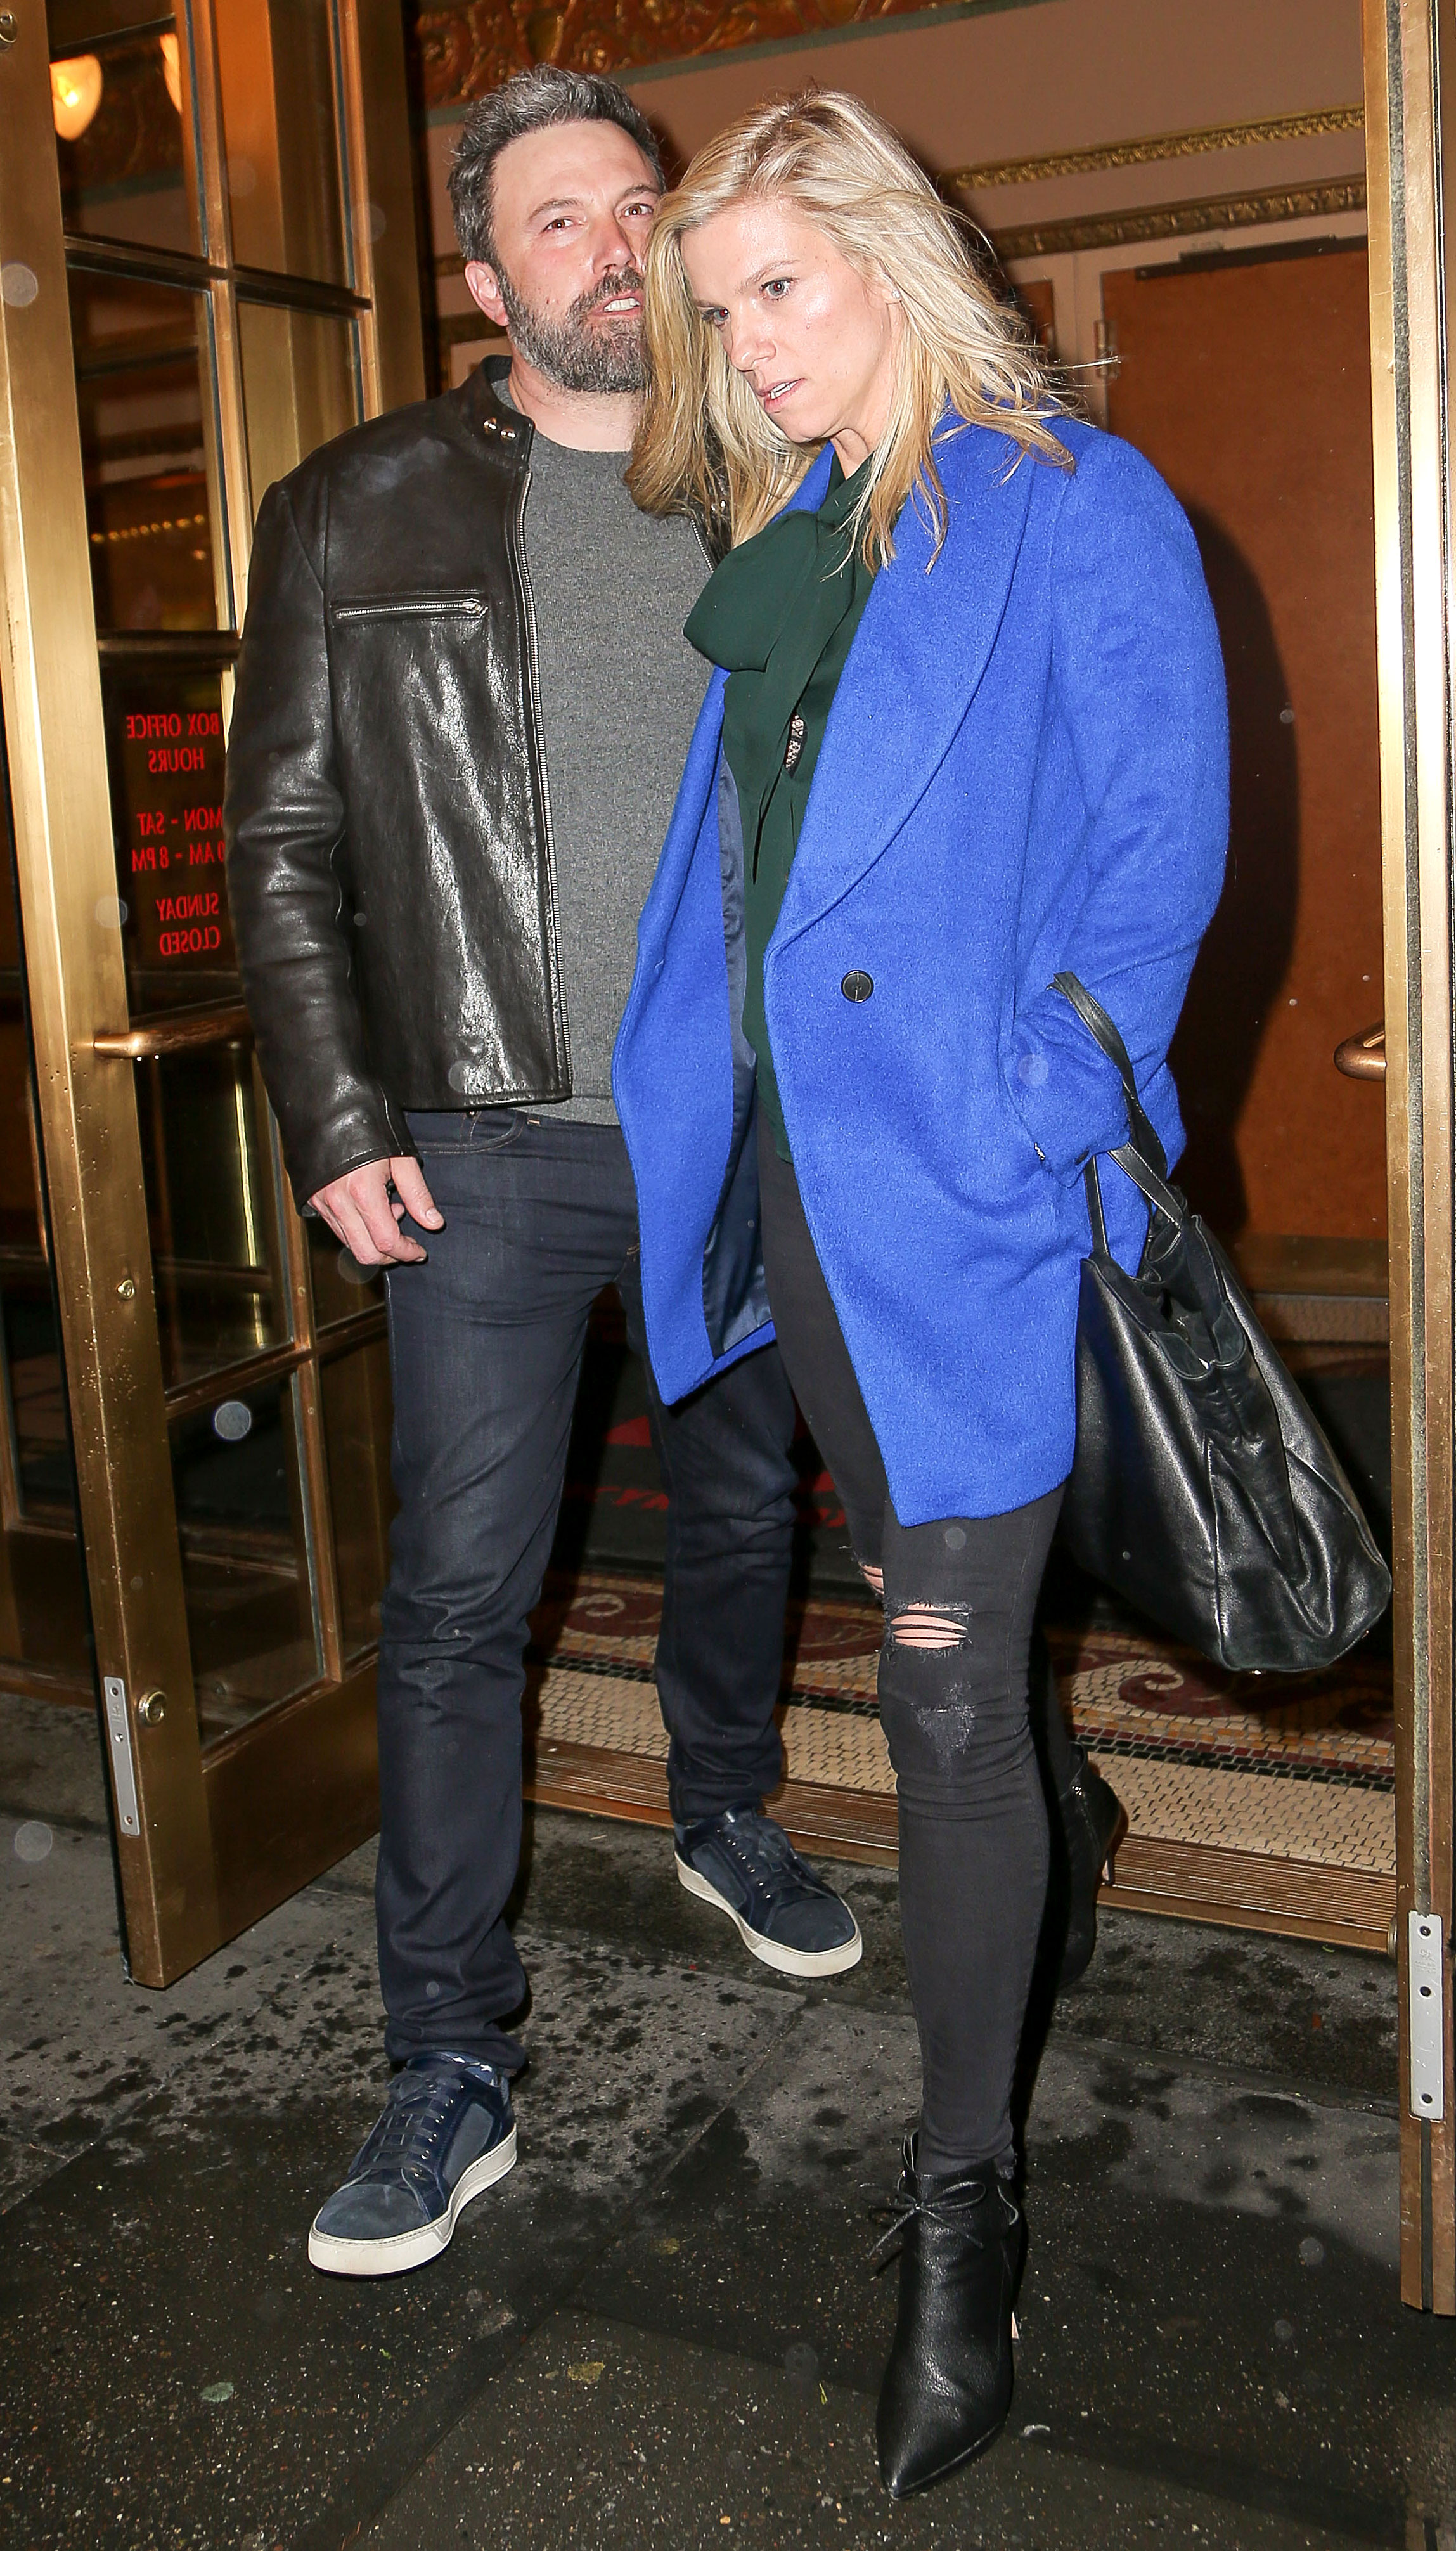 Lindsay Shookus 'Reached Out' to Ben Affleck: 'They've Been Talking' Again - Ben Affleck and Lindsay Shookus leaving Bruce Springsteen's Broadway show on March 2, 2018 in New York City.